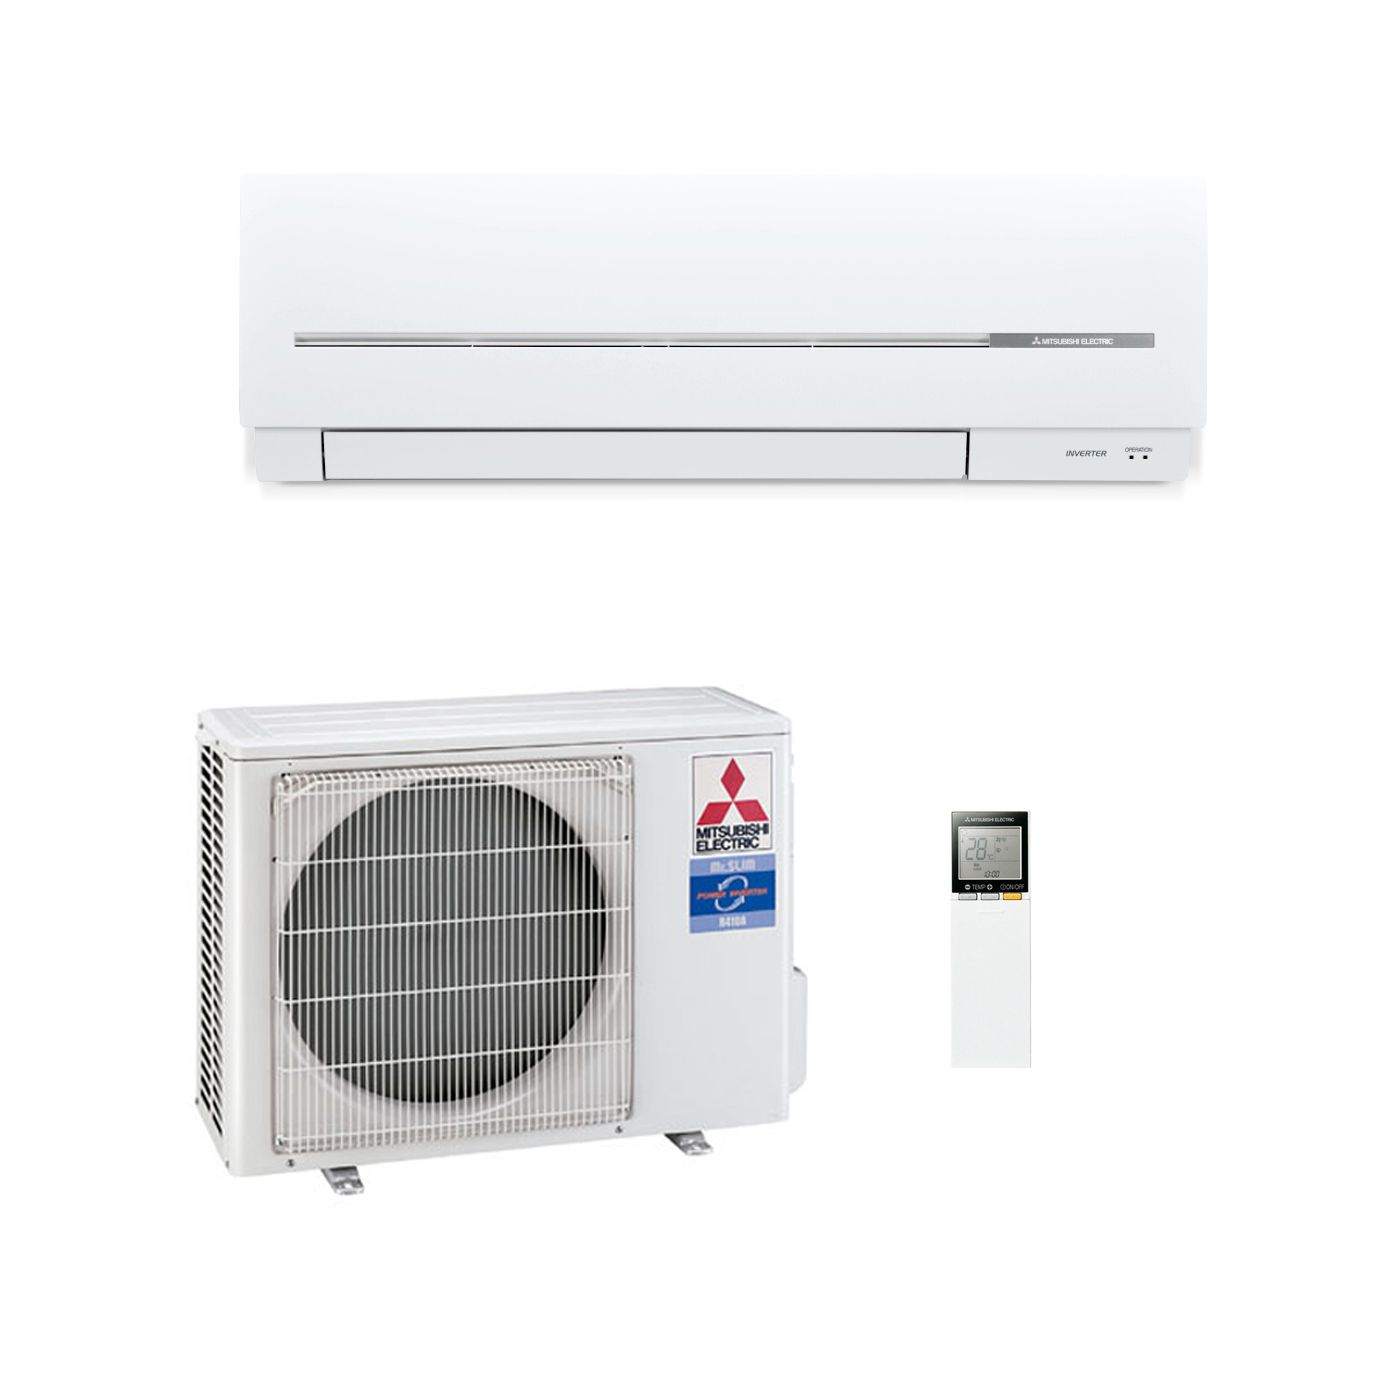 Mitsubishi Electric Air Conditioning MSZ SF35VE Wall Mounted 3.5Kw/12000  Btu Inverter Heat Pump A++ 240V~50Hz